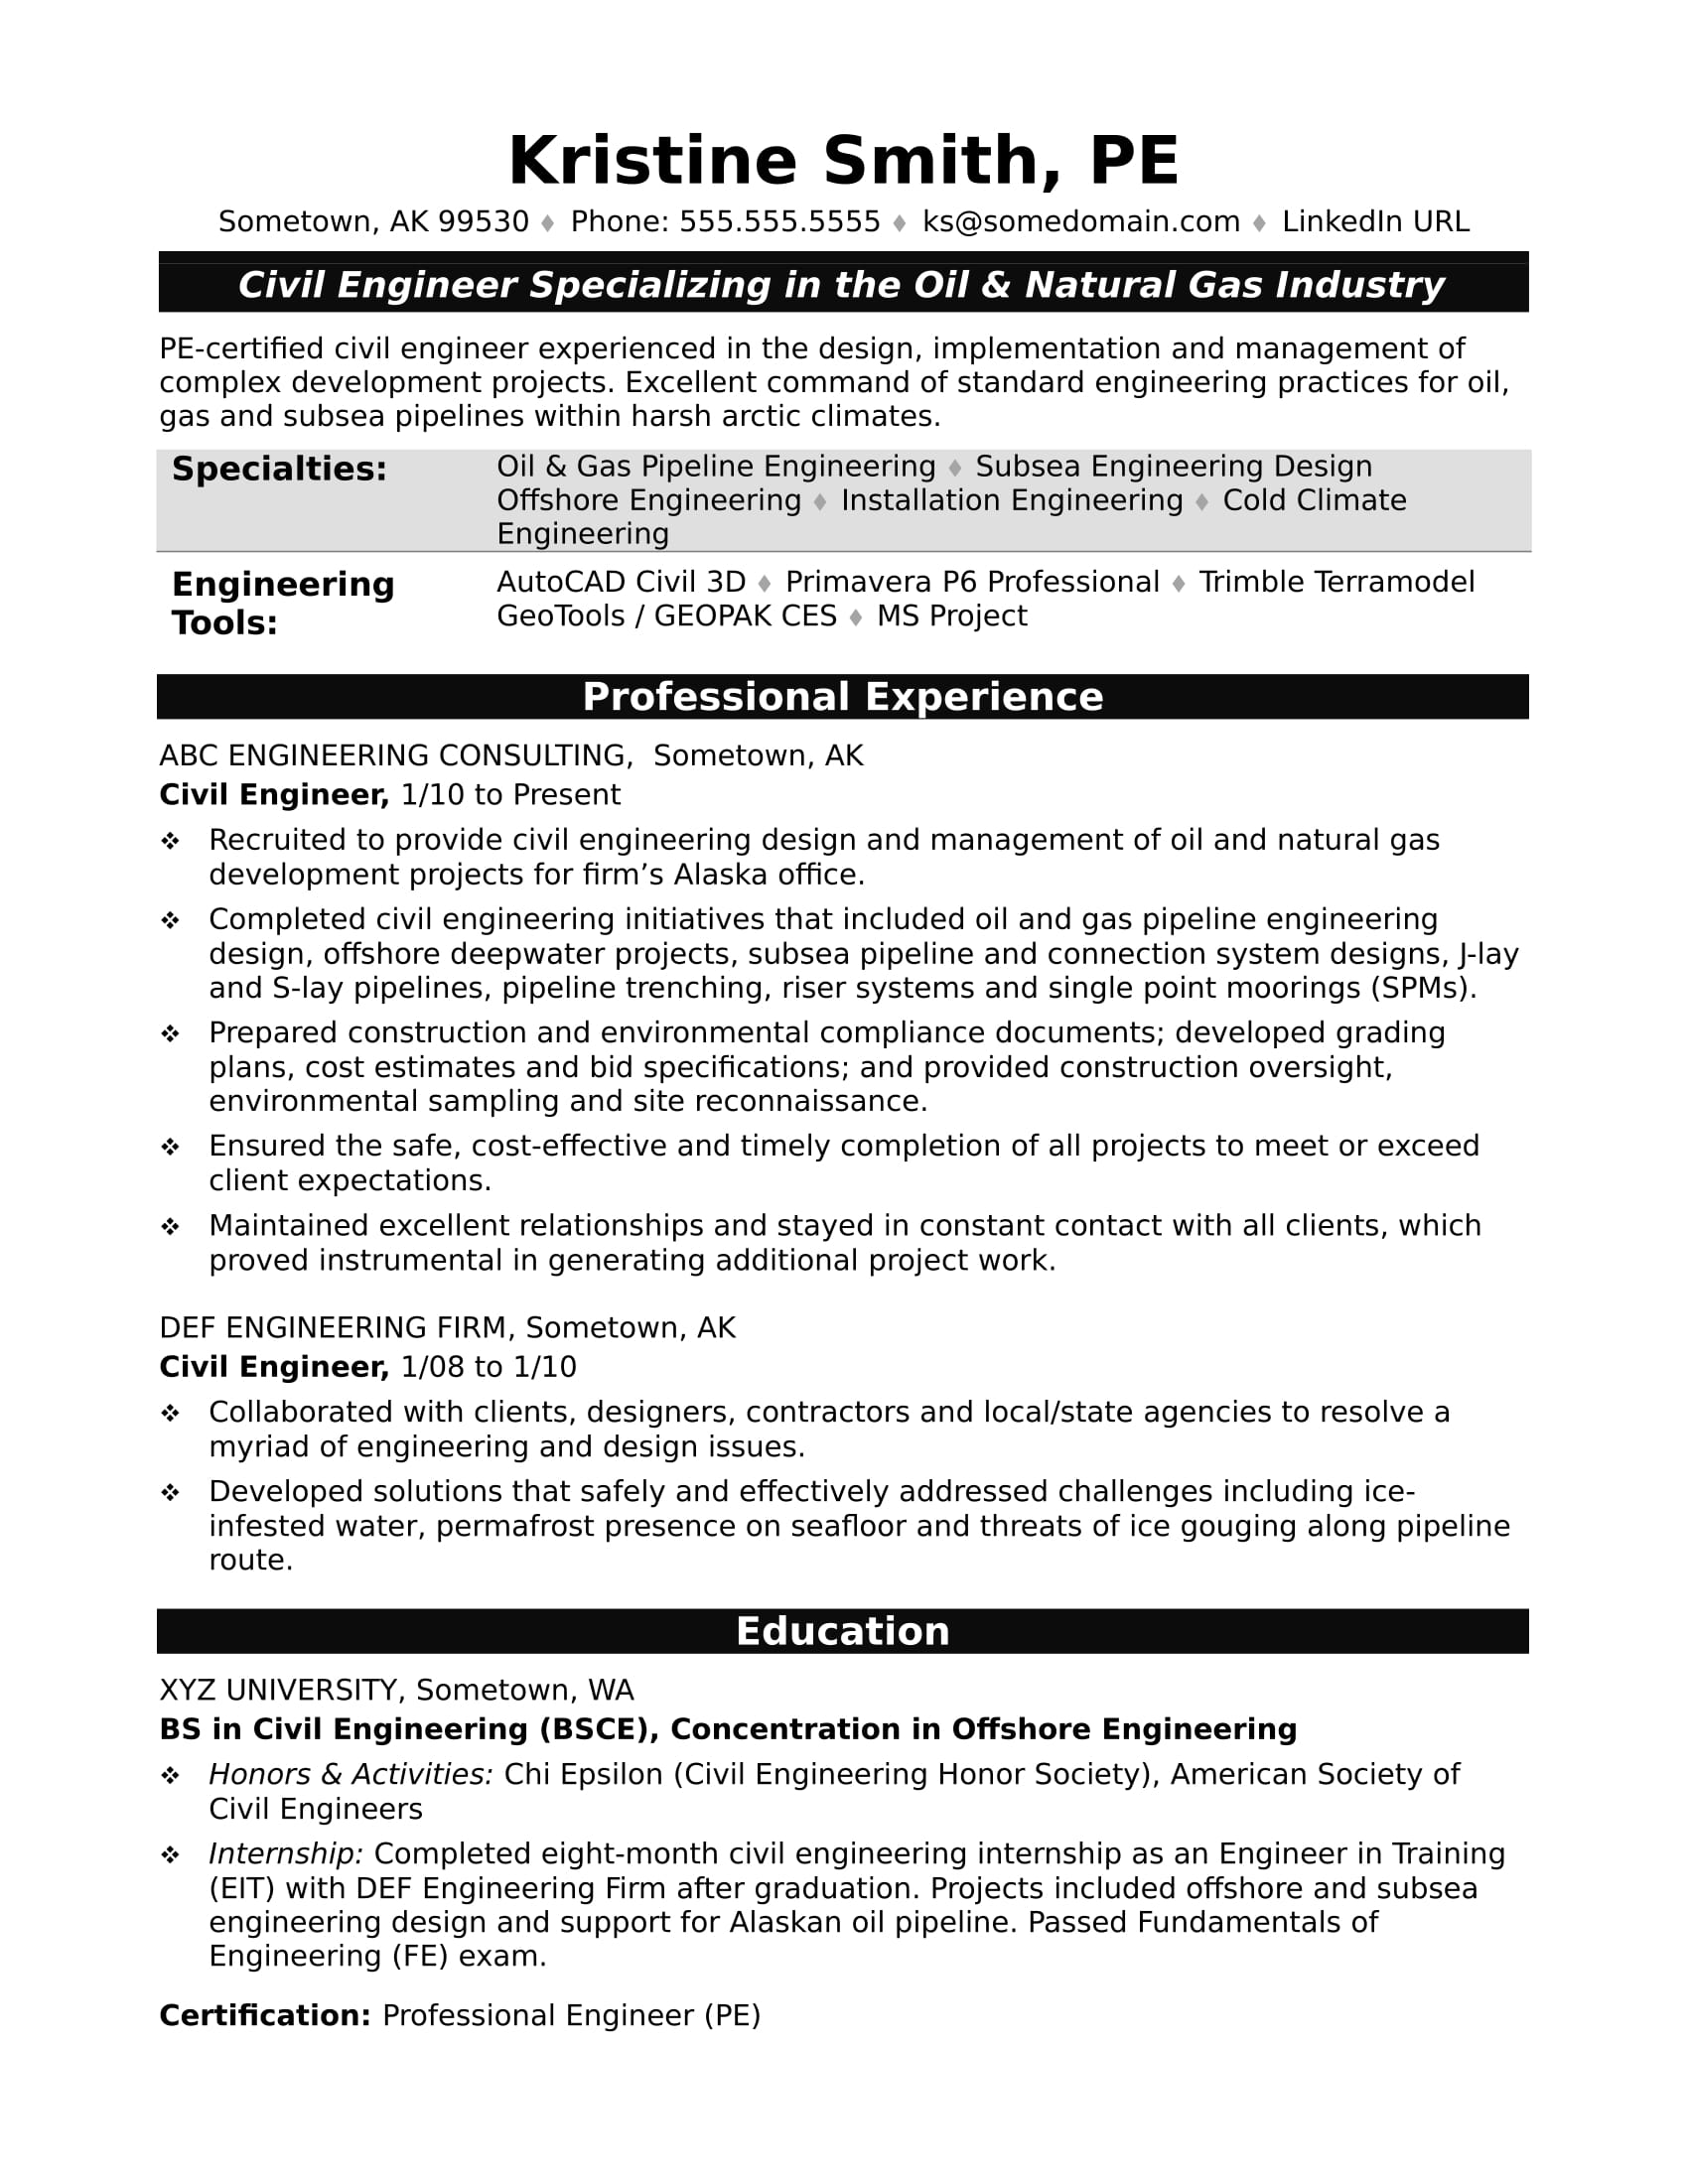 Sample Resume For A Midlevel Civil Engineer  Civil Engineer Resume Sample